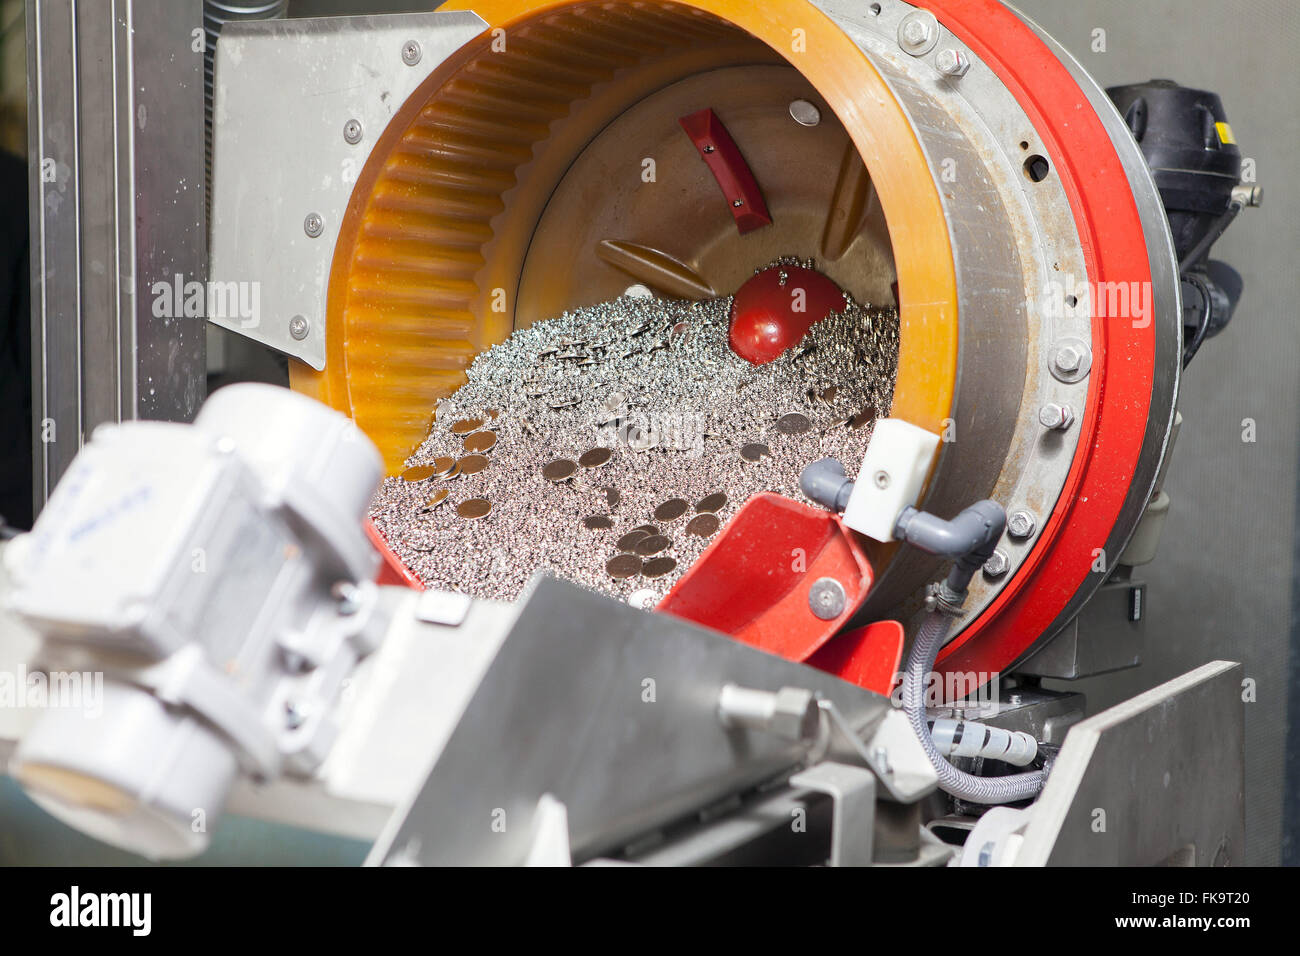 Currencies through the polishing process at the Mint - Stock Image